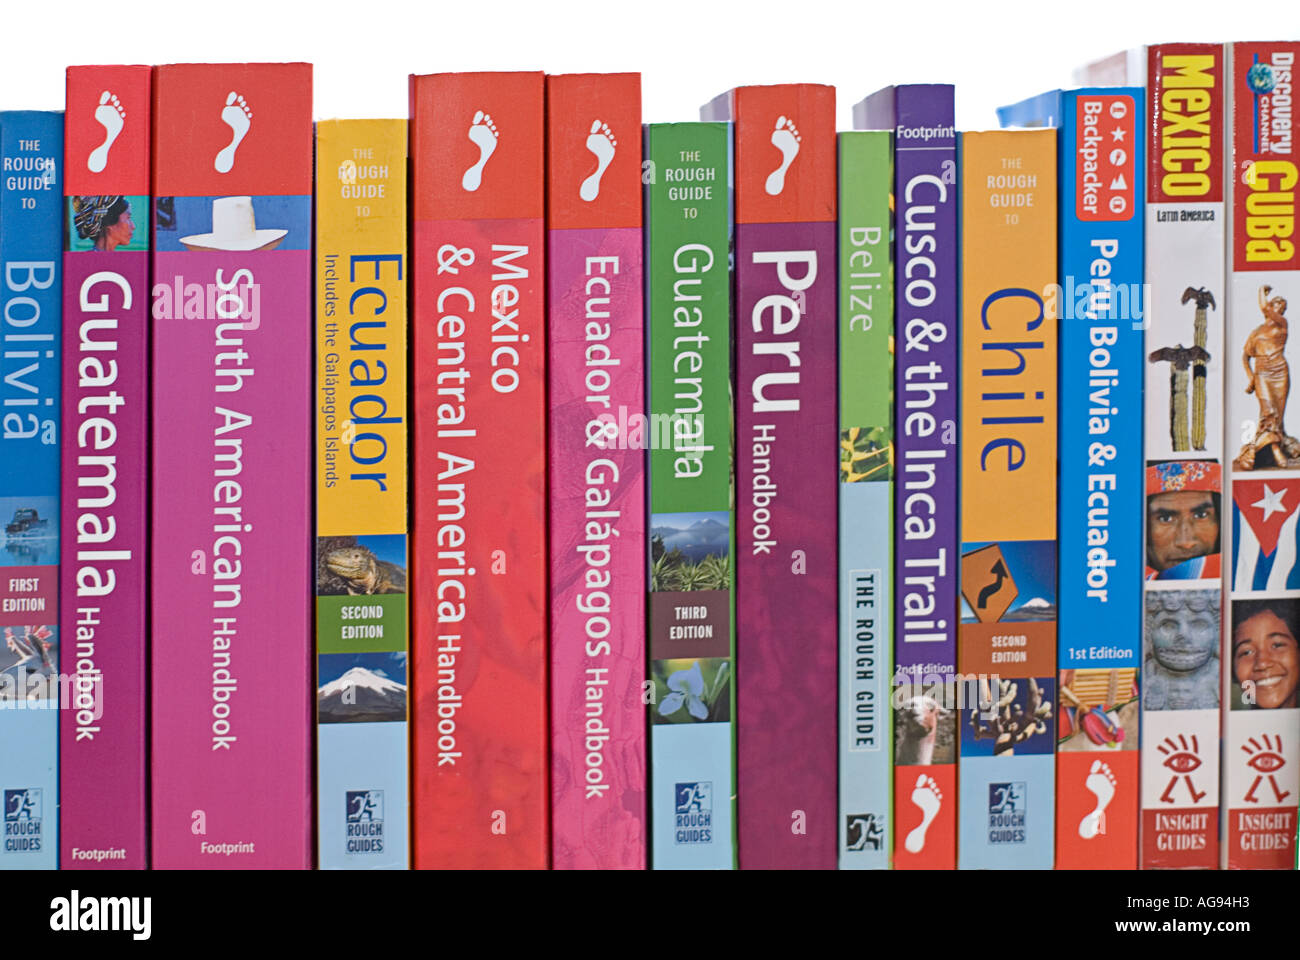 Rough guide travel guide books stock photo: 53436052 alamy.